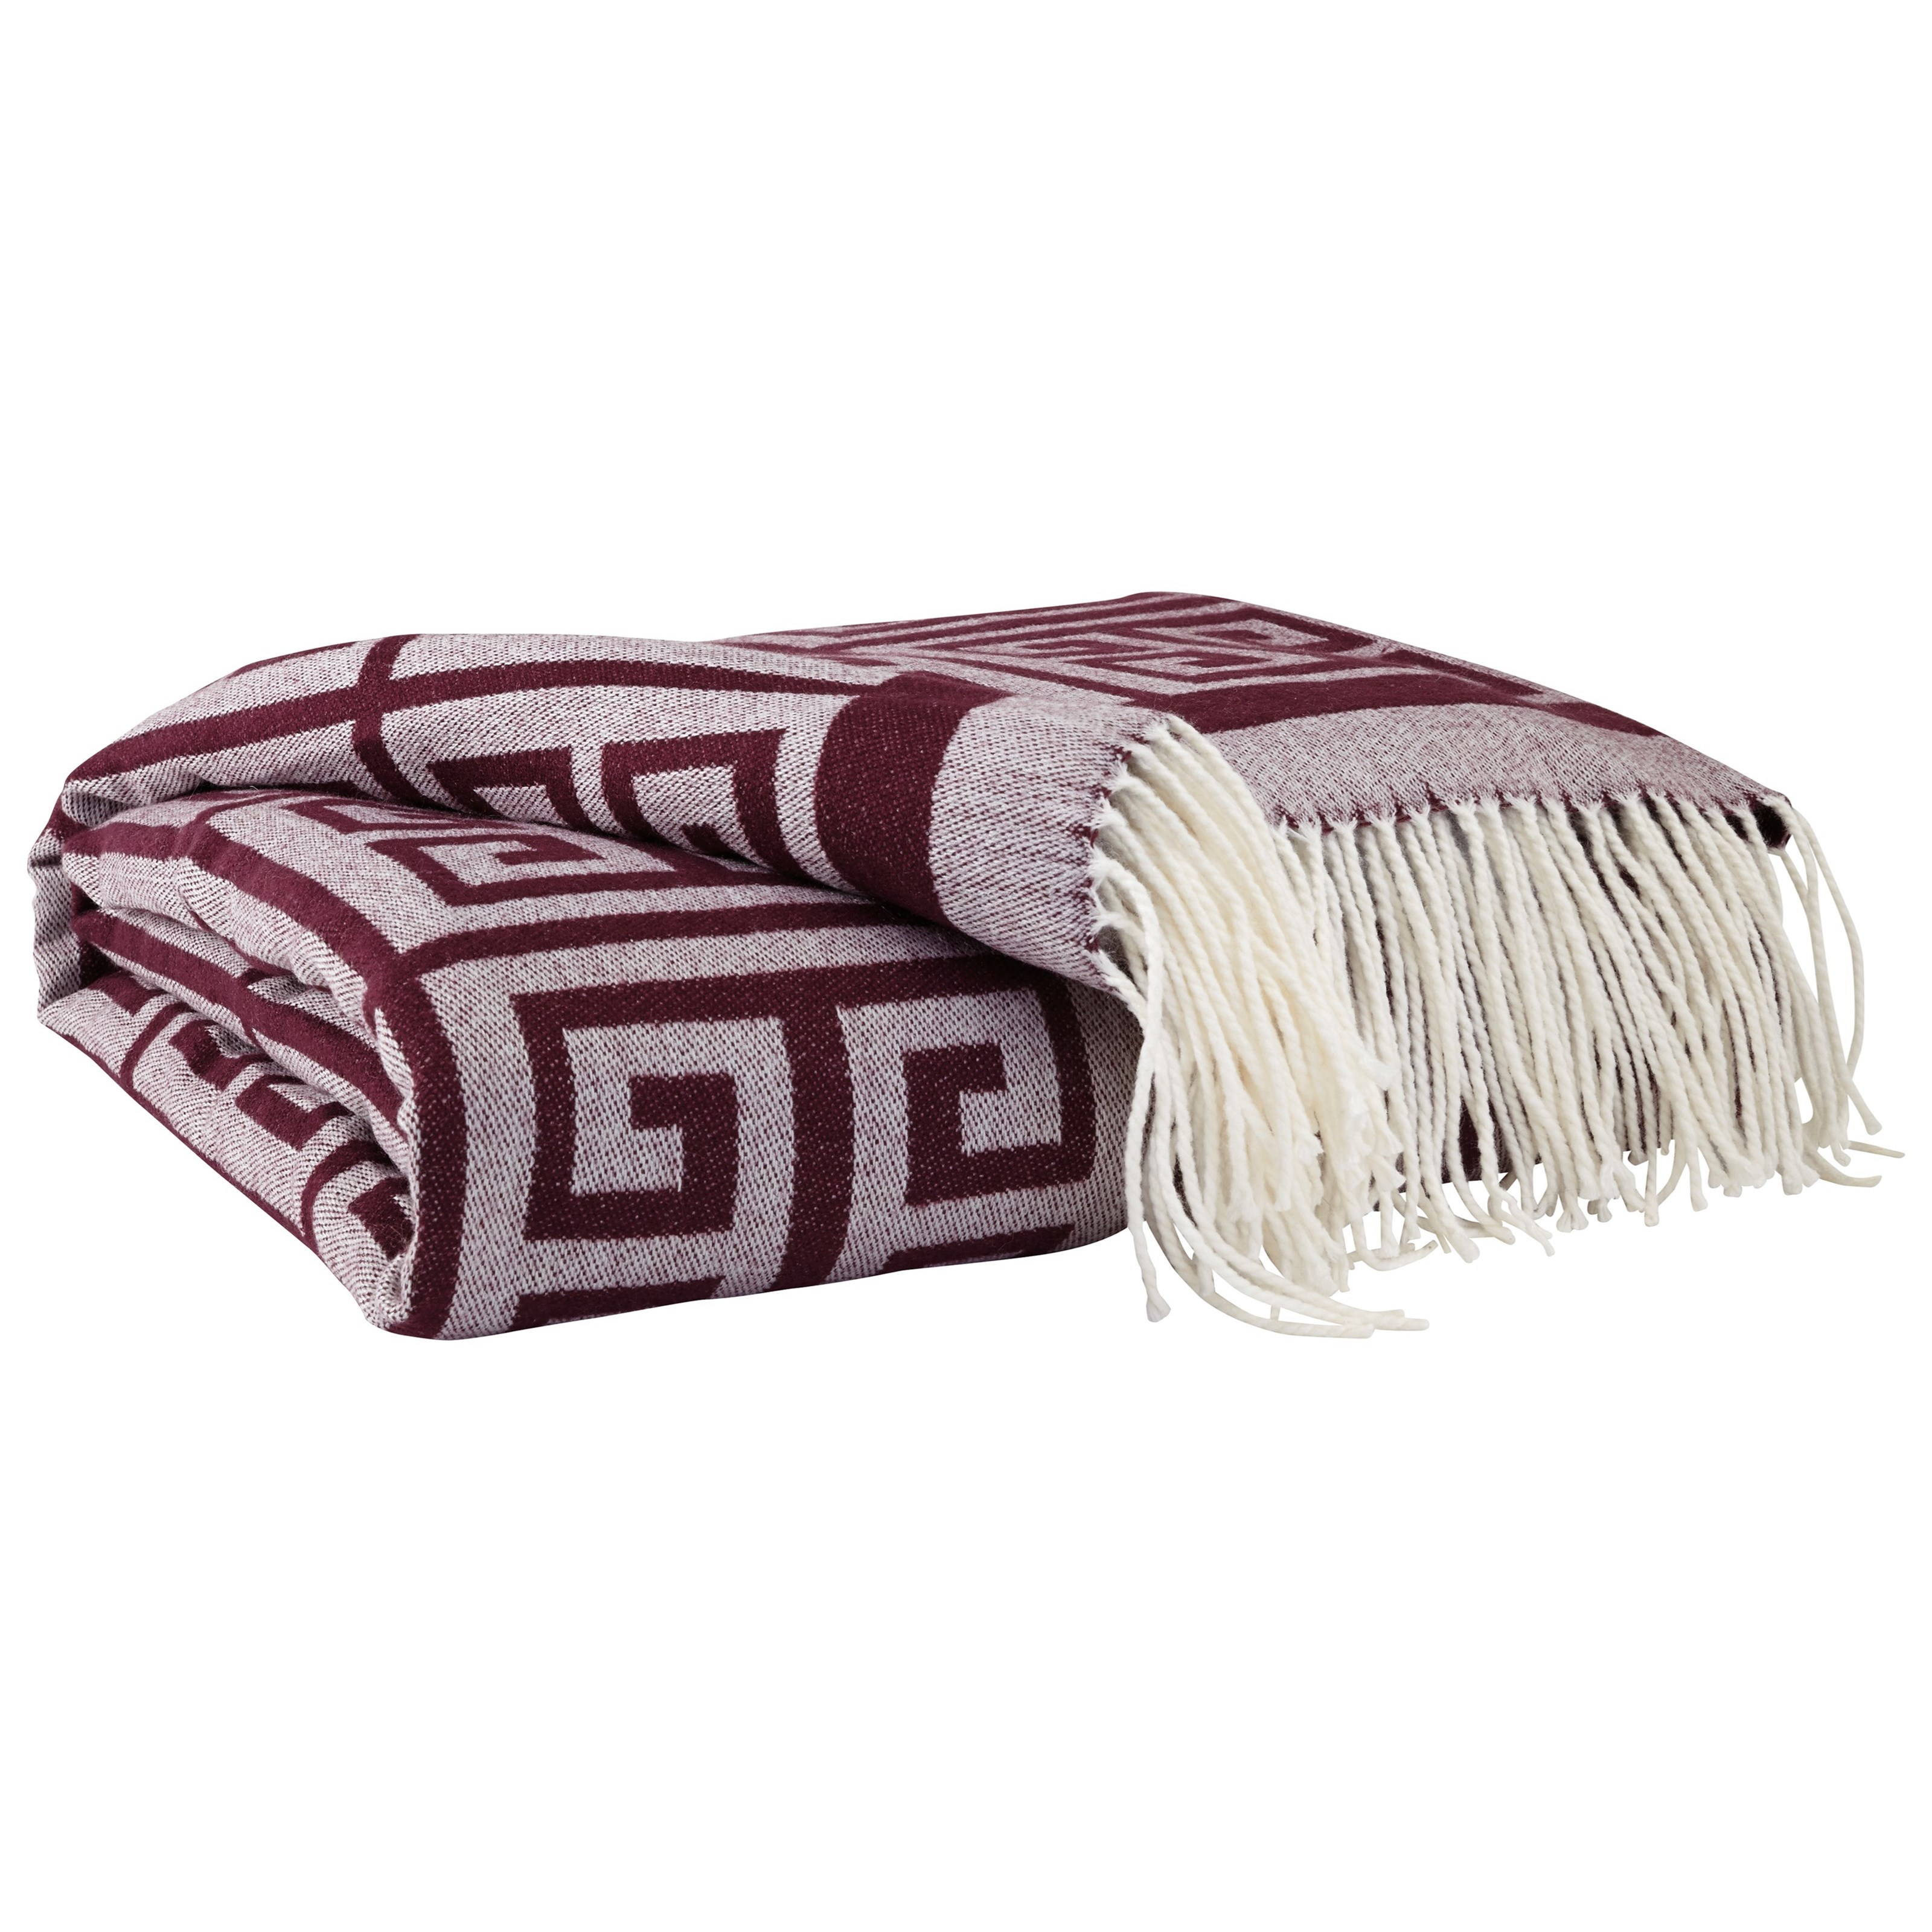 Signature Design by Ashley Throws Anitra - Plum Throw ...